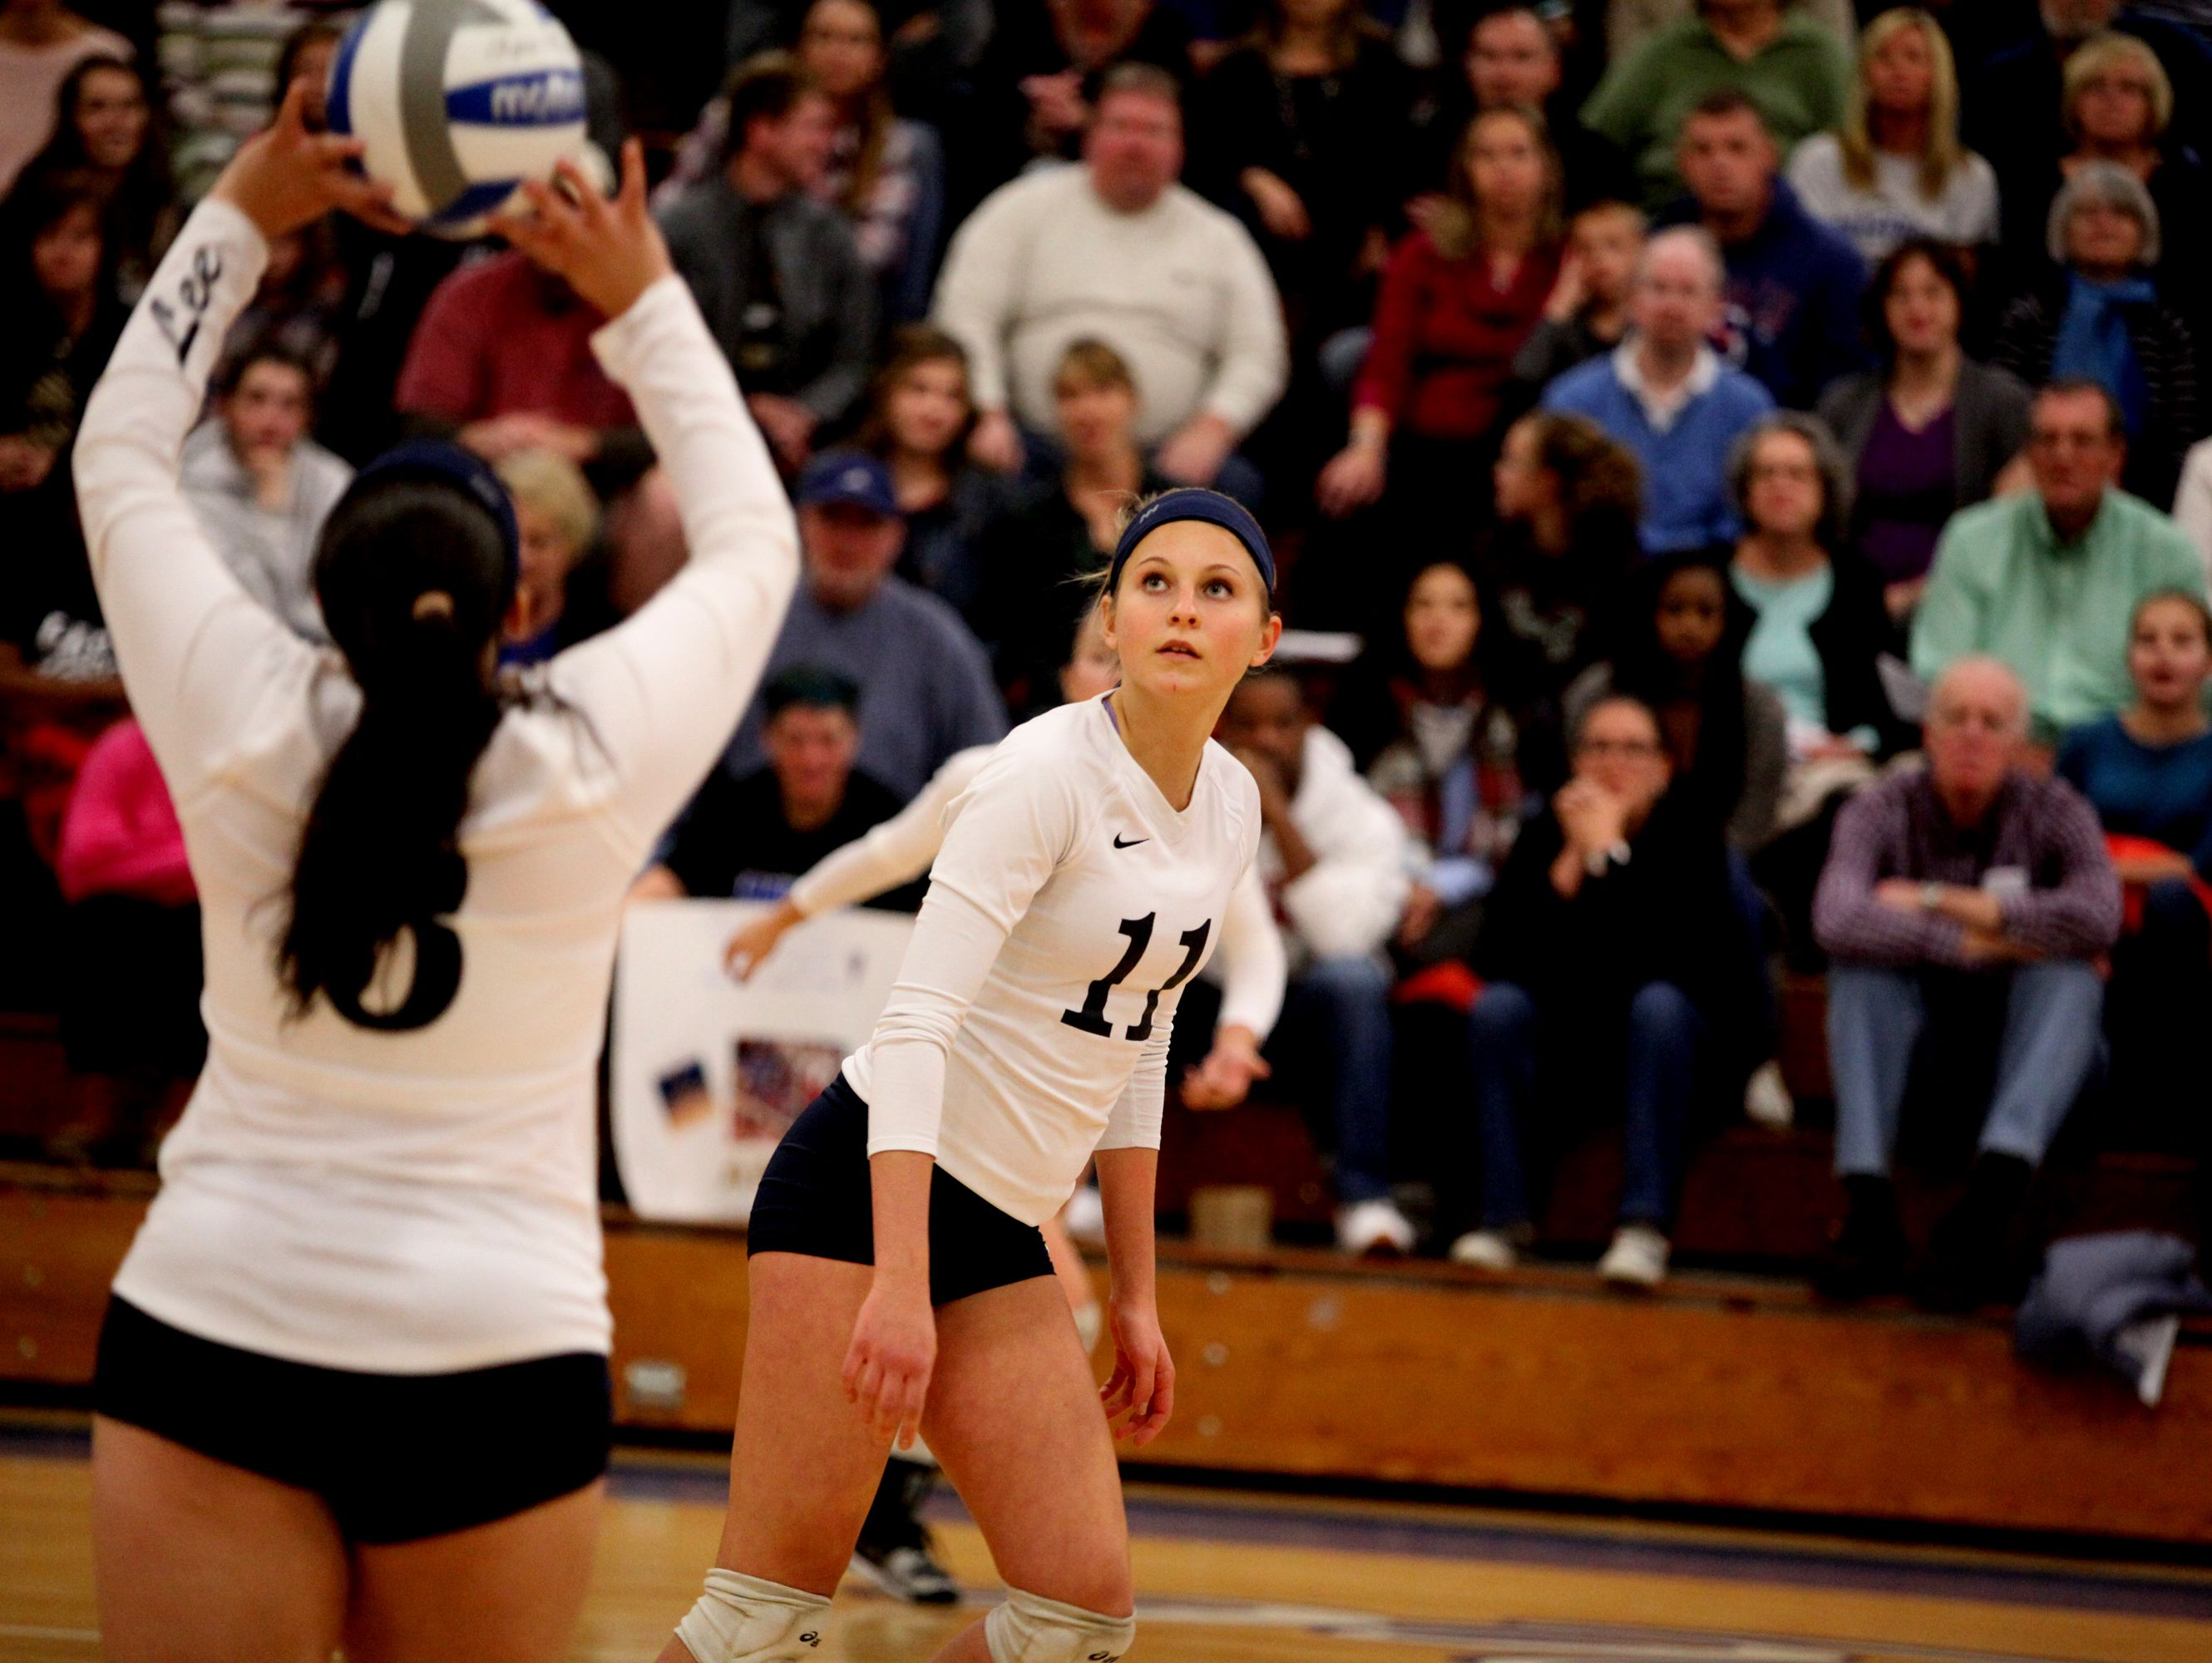 Lee's Addison Keatts prepares to spike a ball set by Amber Johnson during the 2A girls volleyball championship at R.E. Lee High School in Staunton on Saturday Nov. 12, 2016.